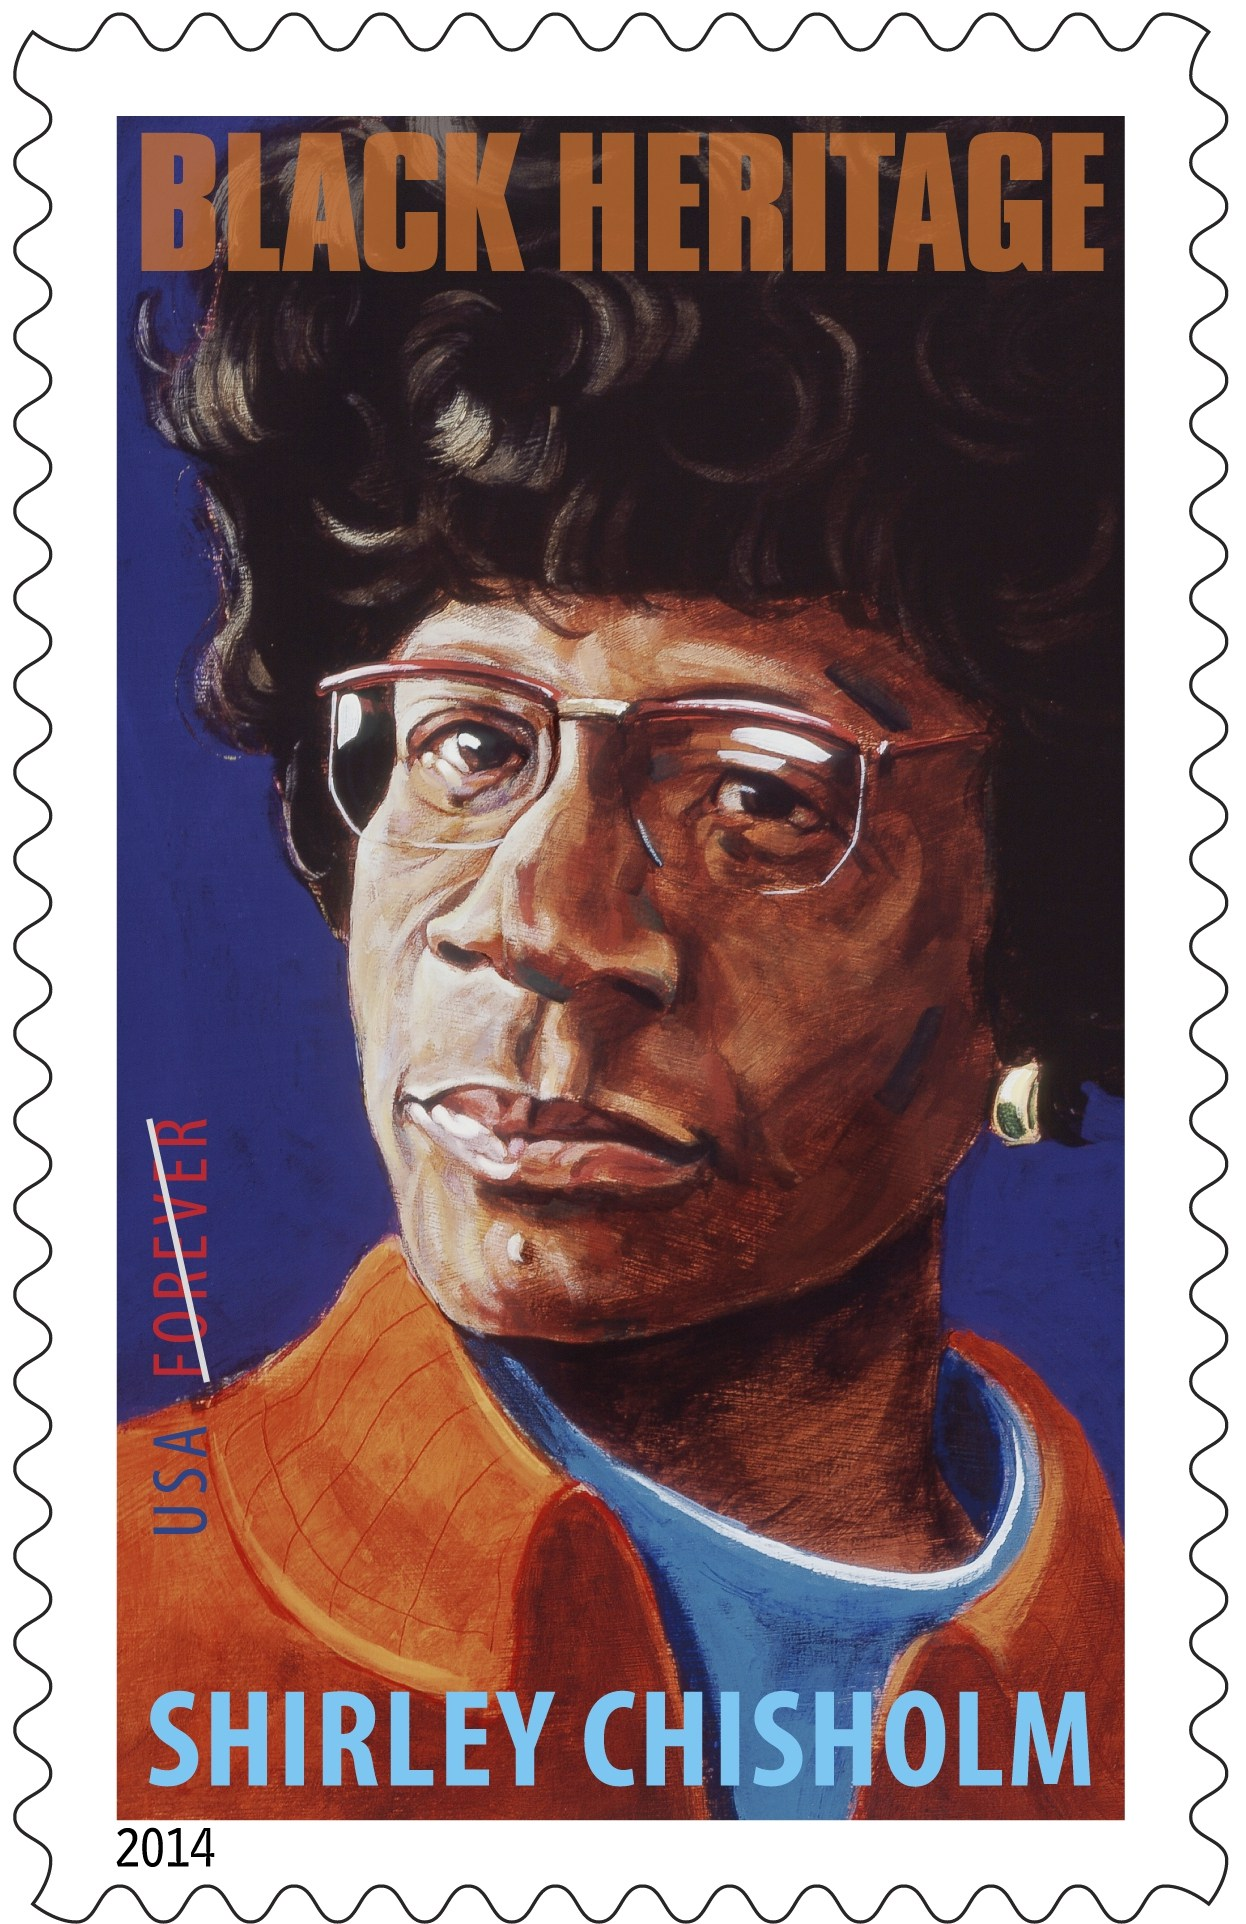 Shirley-Chisholm-hi-res5